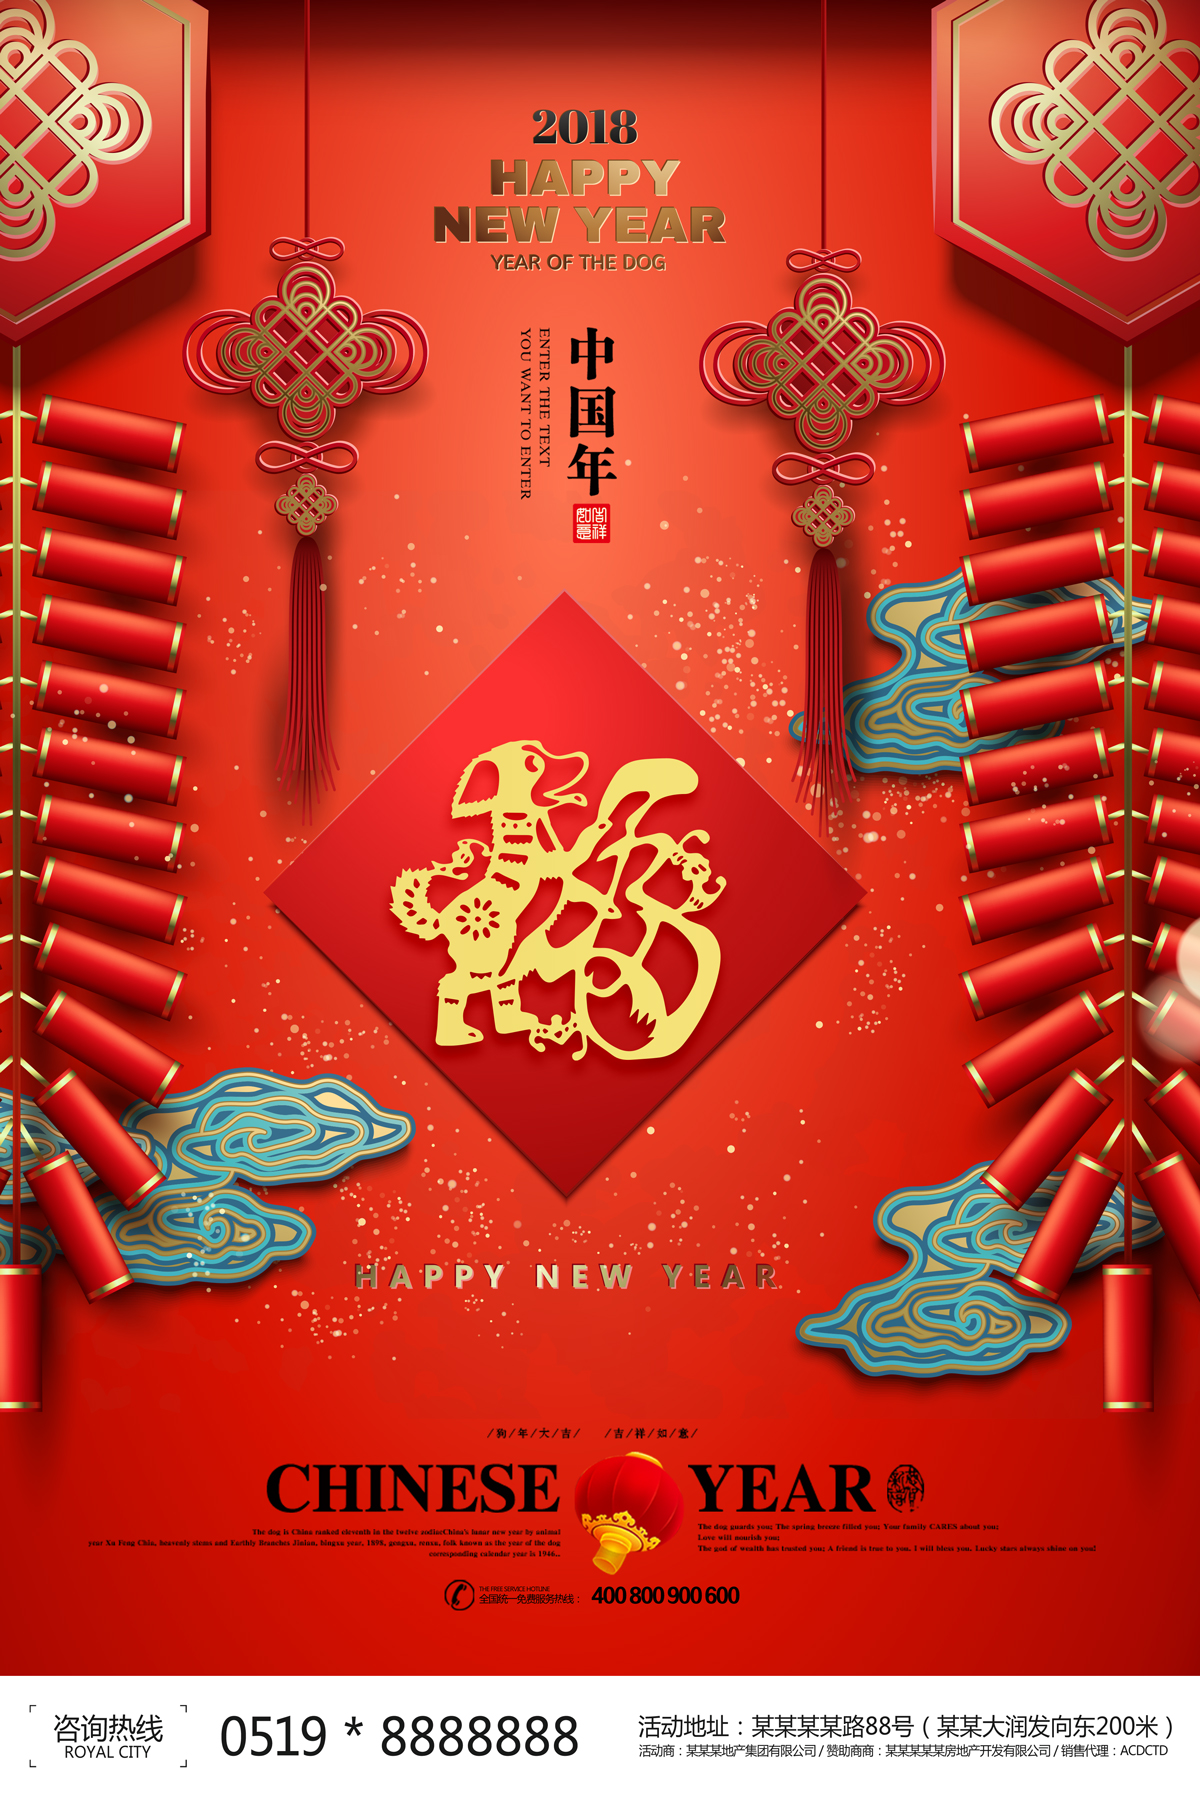 chinesefontdesign.com 2018 02 08 13 07 14 368795 Chinese new spring Poster  Chinese knot Design Inspiration PSD File Free Download the dog dog spring spring psd promotion posters greeting cards firecrackers China celebrate the year of the dog auspicious dog